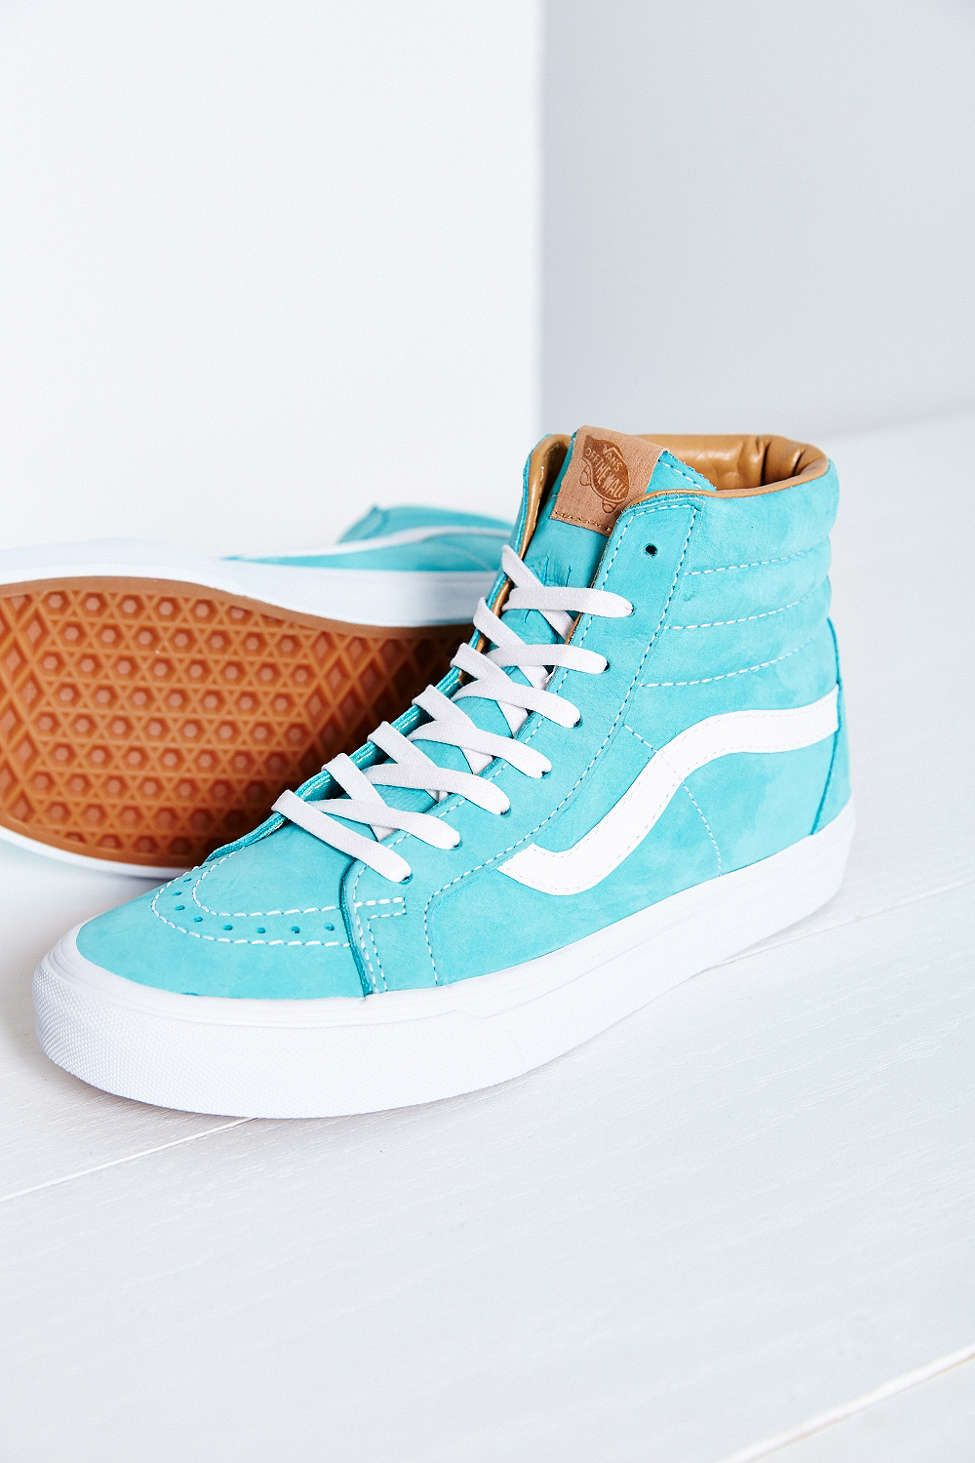 Vans — California SK8 Buttersoft Reissue High Top Sneakers